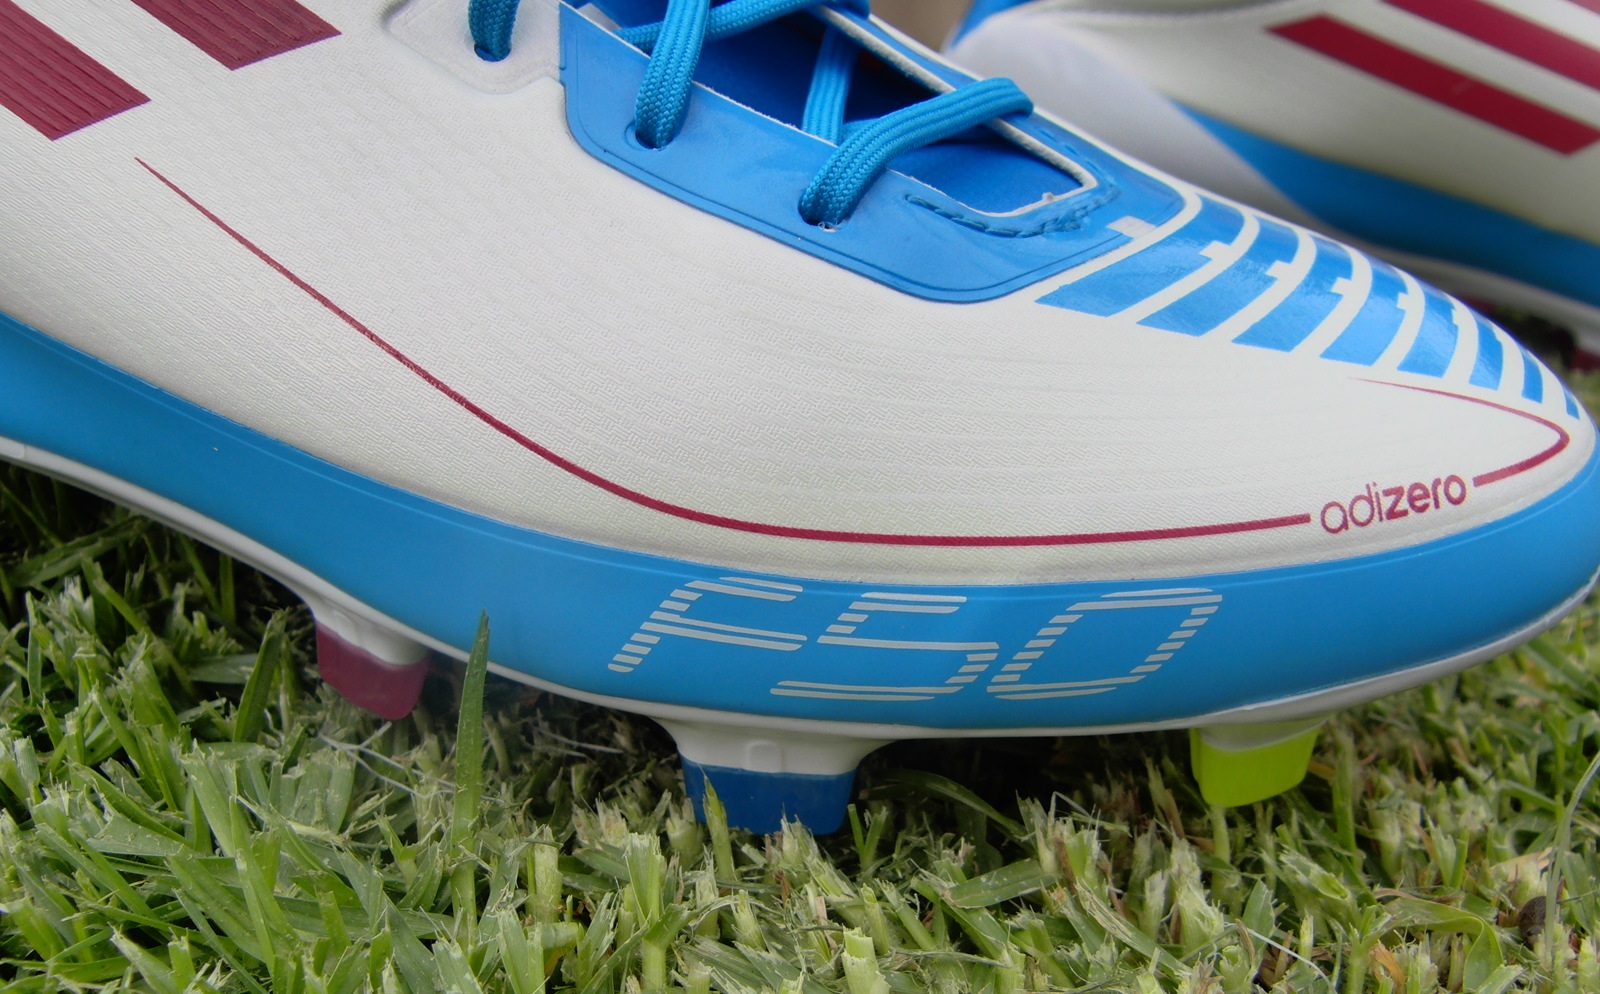 f113a7277b5 ... trx fg cleats lightning white radiant pink cyan White Cyan F50 adizero  Spec  Adidas F50 adiZero Prime up close . ...